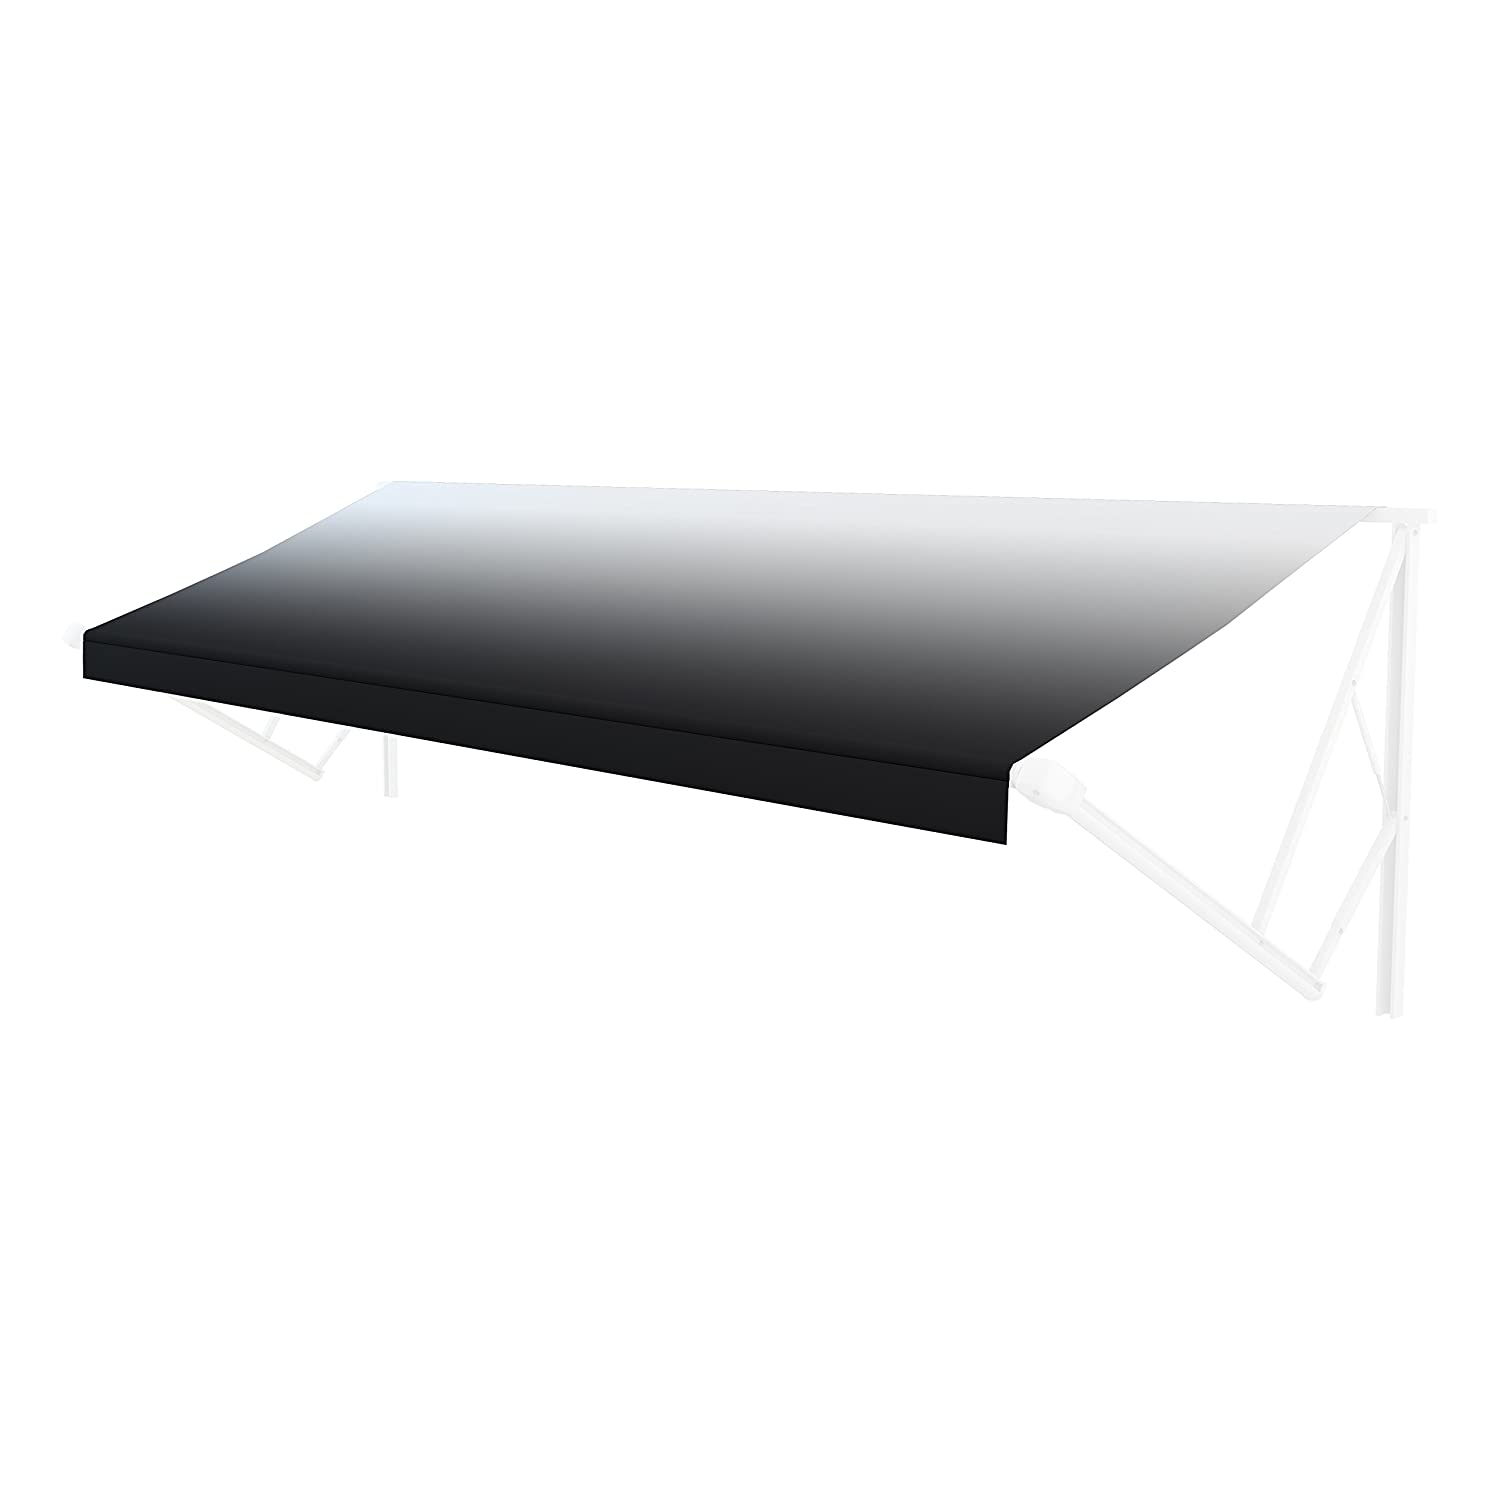 104 Fabric Black when Closed 11 Awning Solera Universal Fit Heavy-Duty Vinyl RV Patio Awning Replacement Fabric Sand Fade